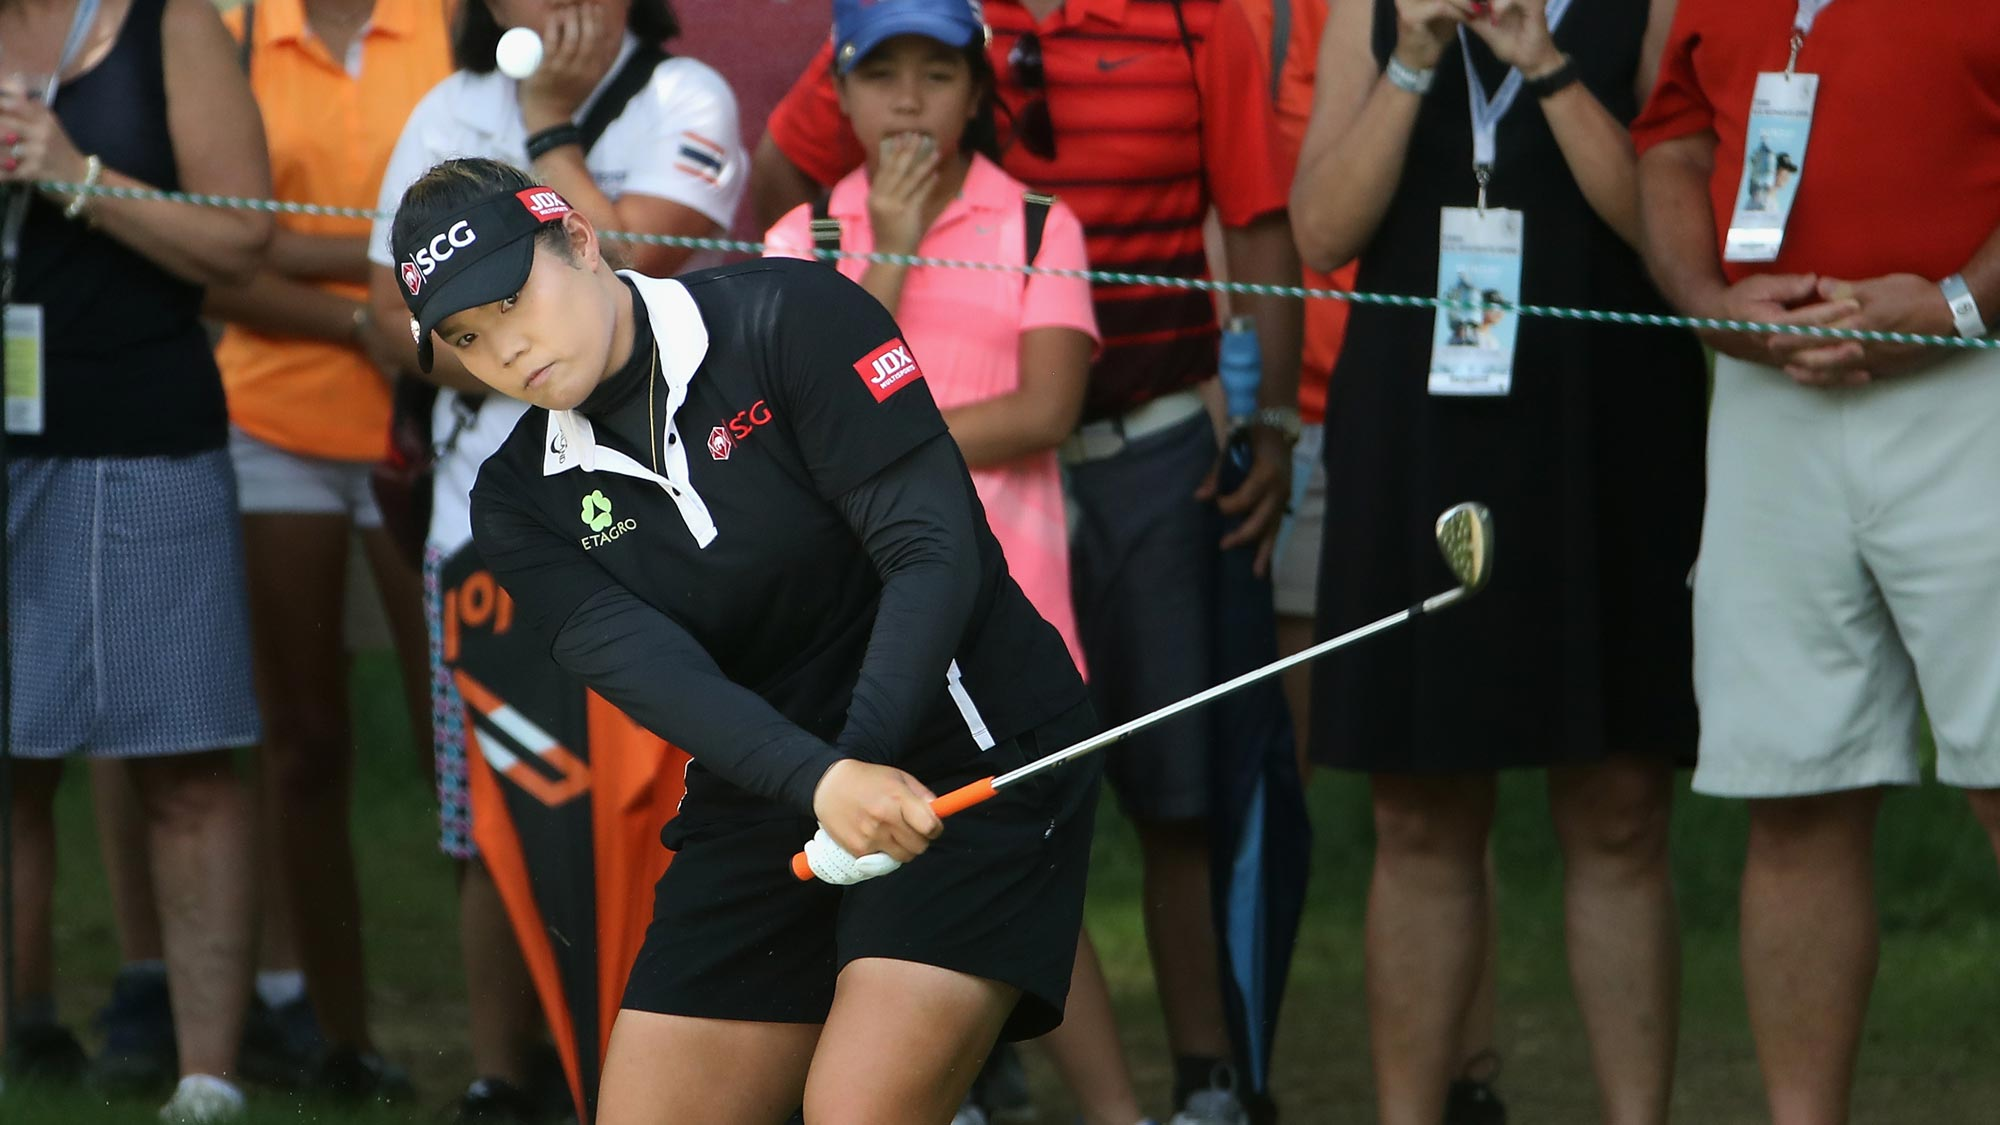 Ariya Jutanugarn of Thailand chips onto the second green during the final round of the 2018 U.S. Women's Open